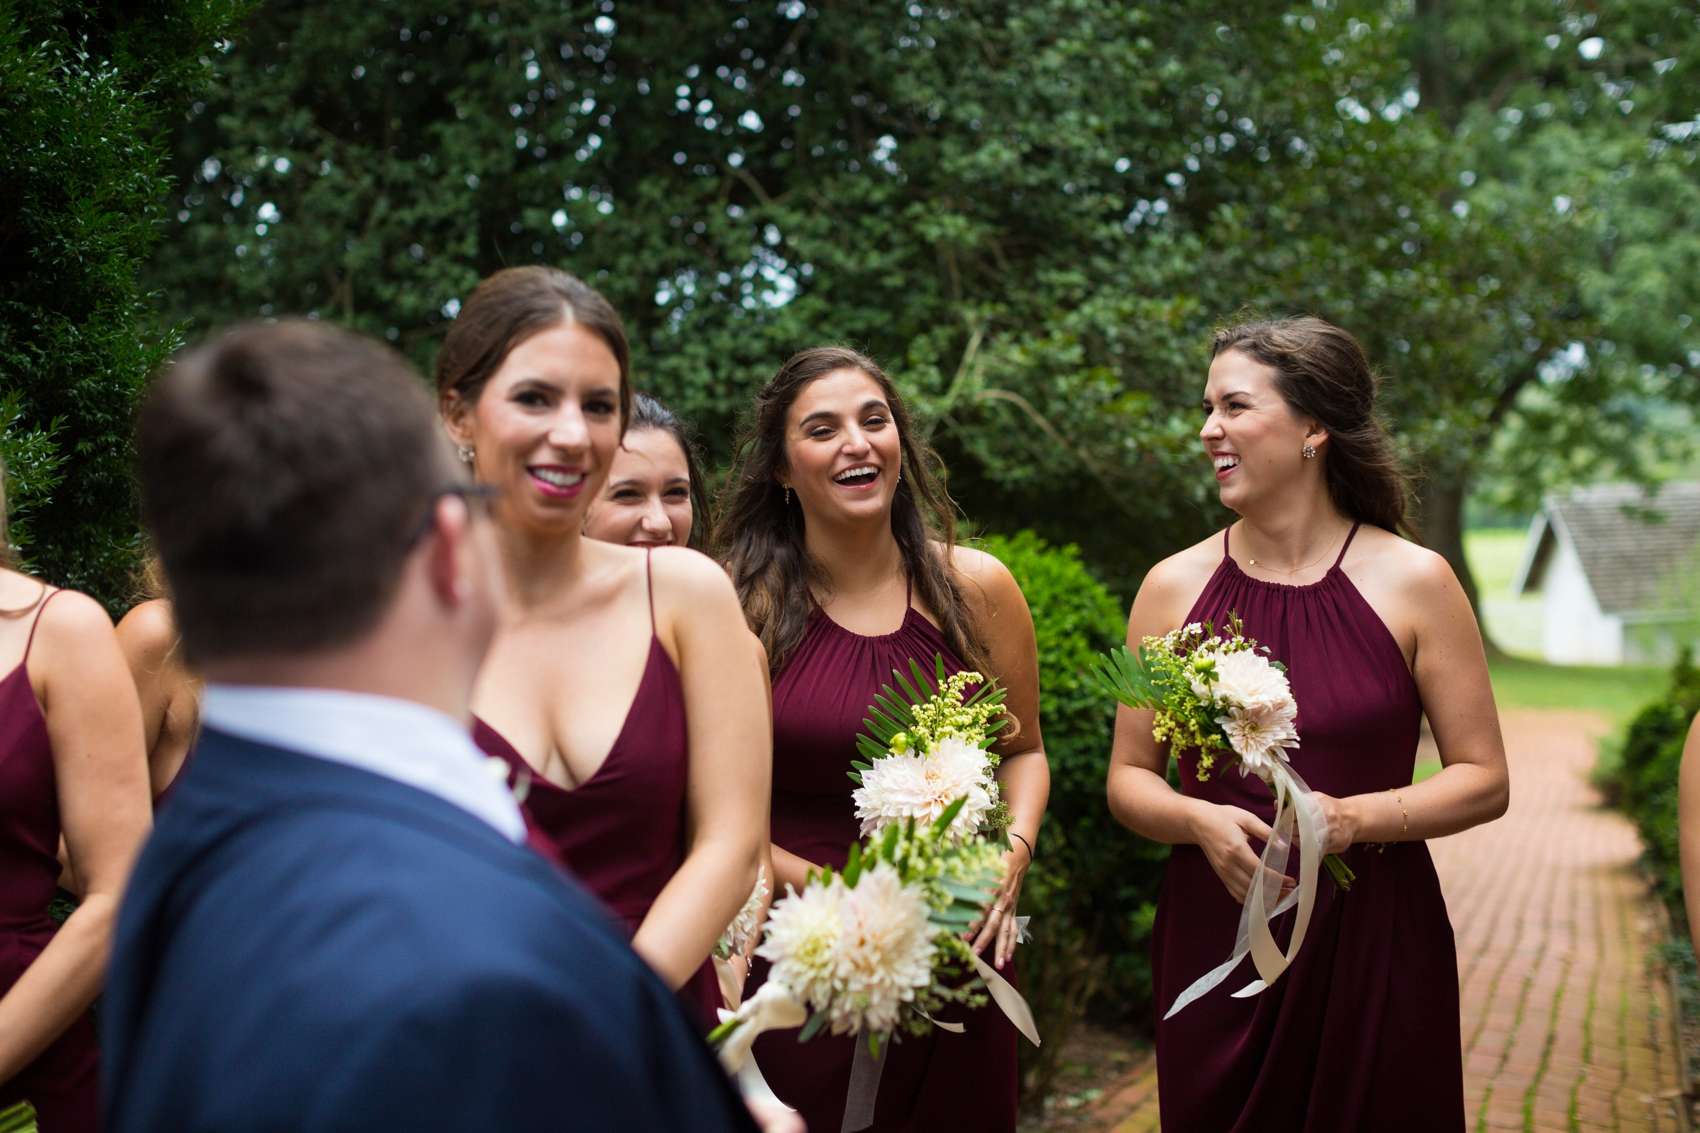 Ashlawn-Highland-Virginia-Wedding-2018-0358.jpg